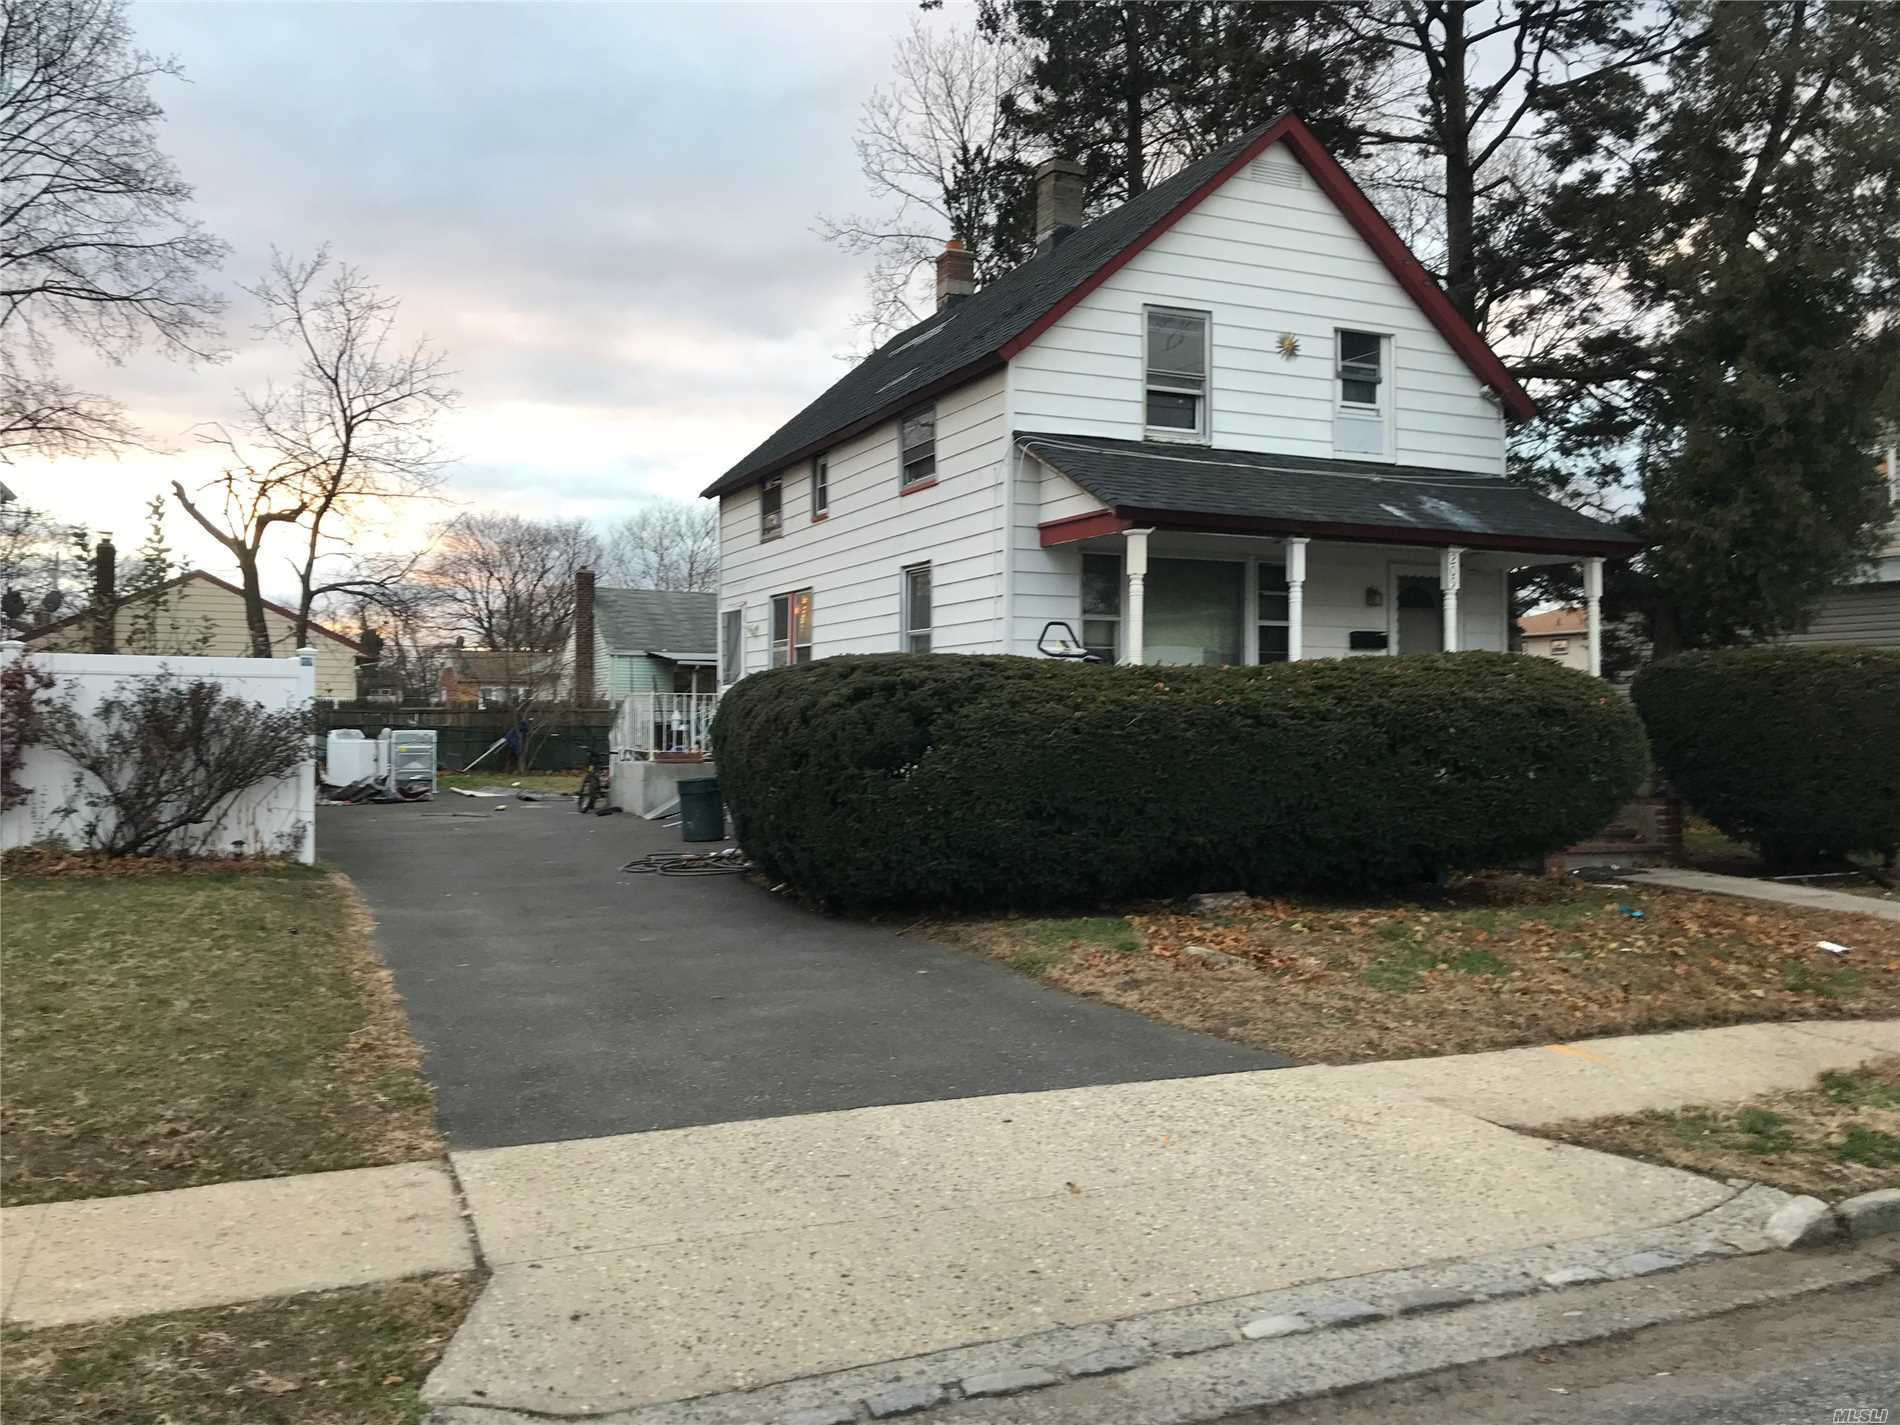 House In Need Of Tlc & Updating. Conveniently Located Near Trains, Houses Of Worship, Highways, Shops. Nice Sized Property. Motivated Seller/ Wants To Hear All Offers. Selling As-Is. Buyer To Verify All Info. Not A Short Sale Or Foreclosure!